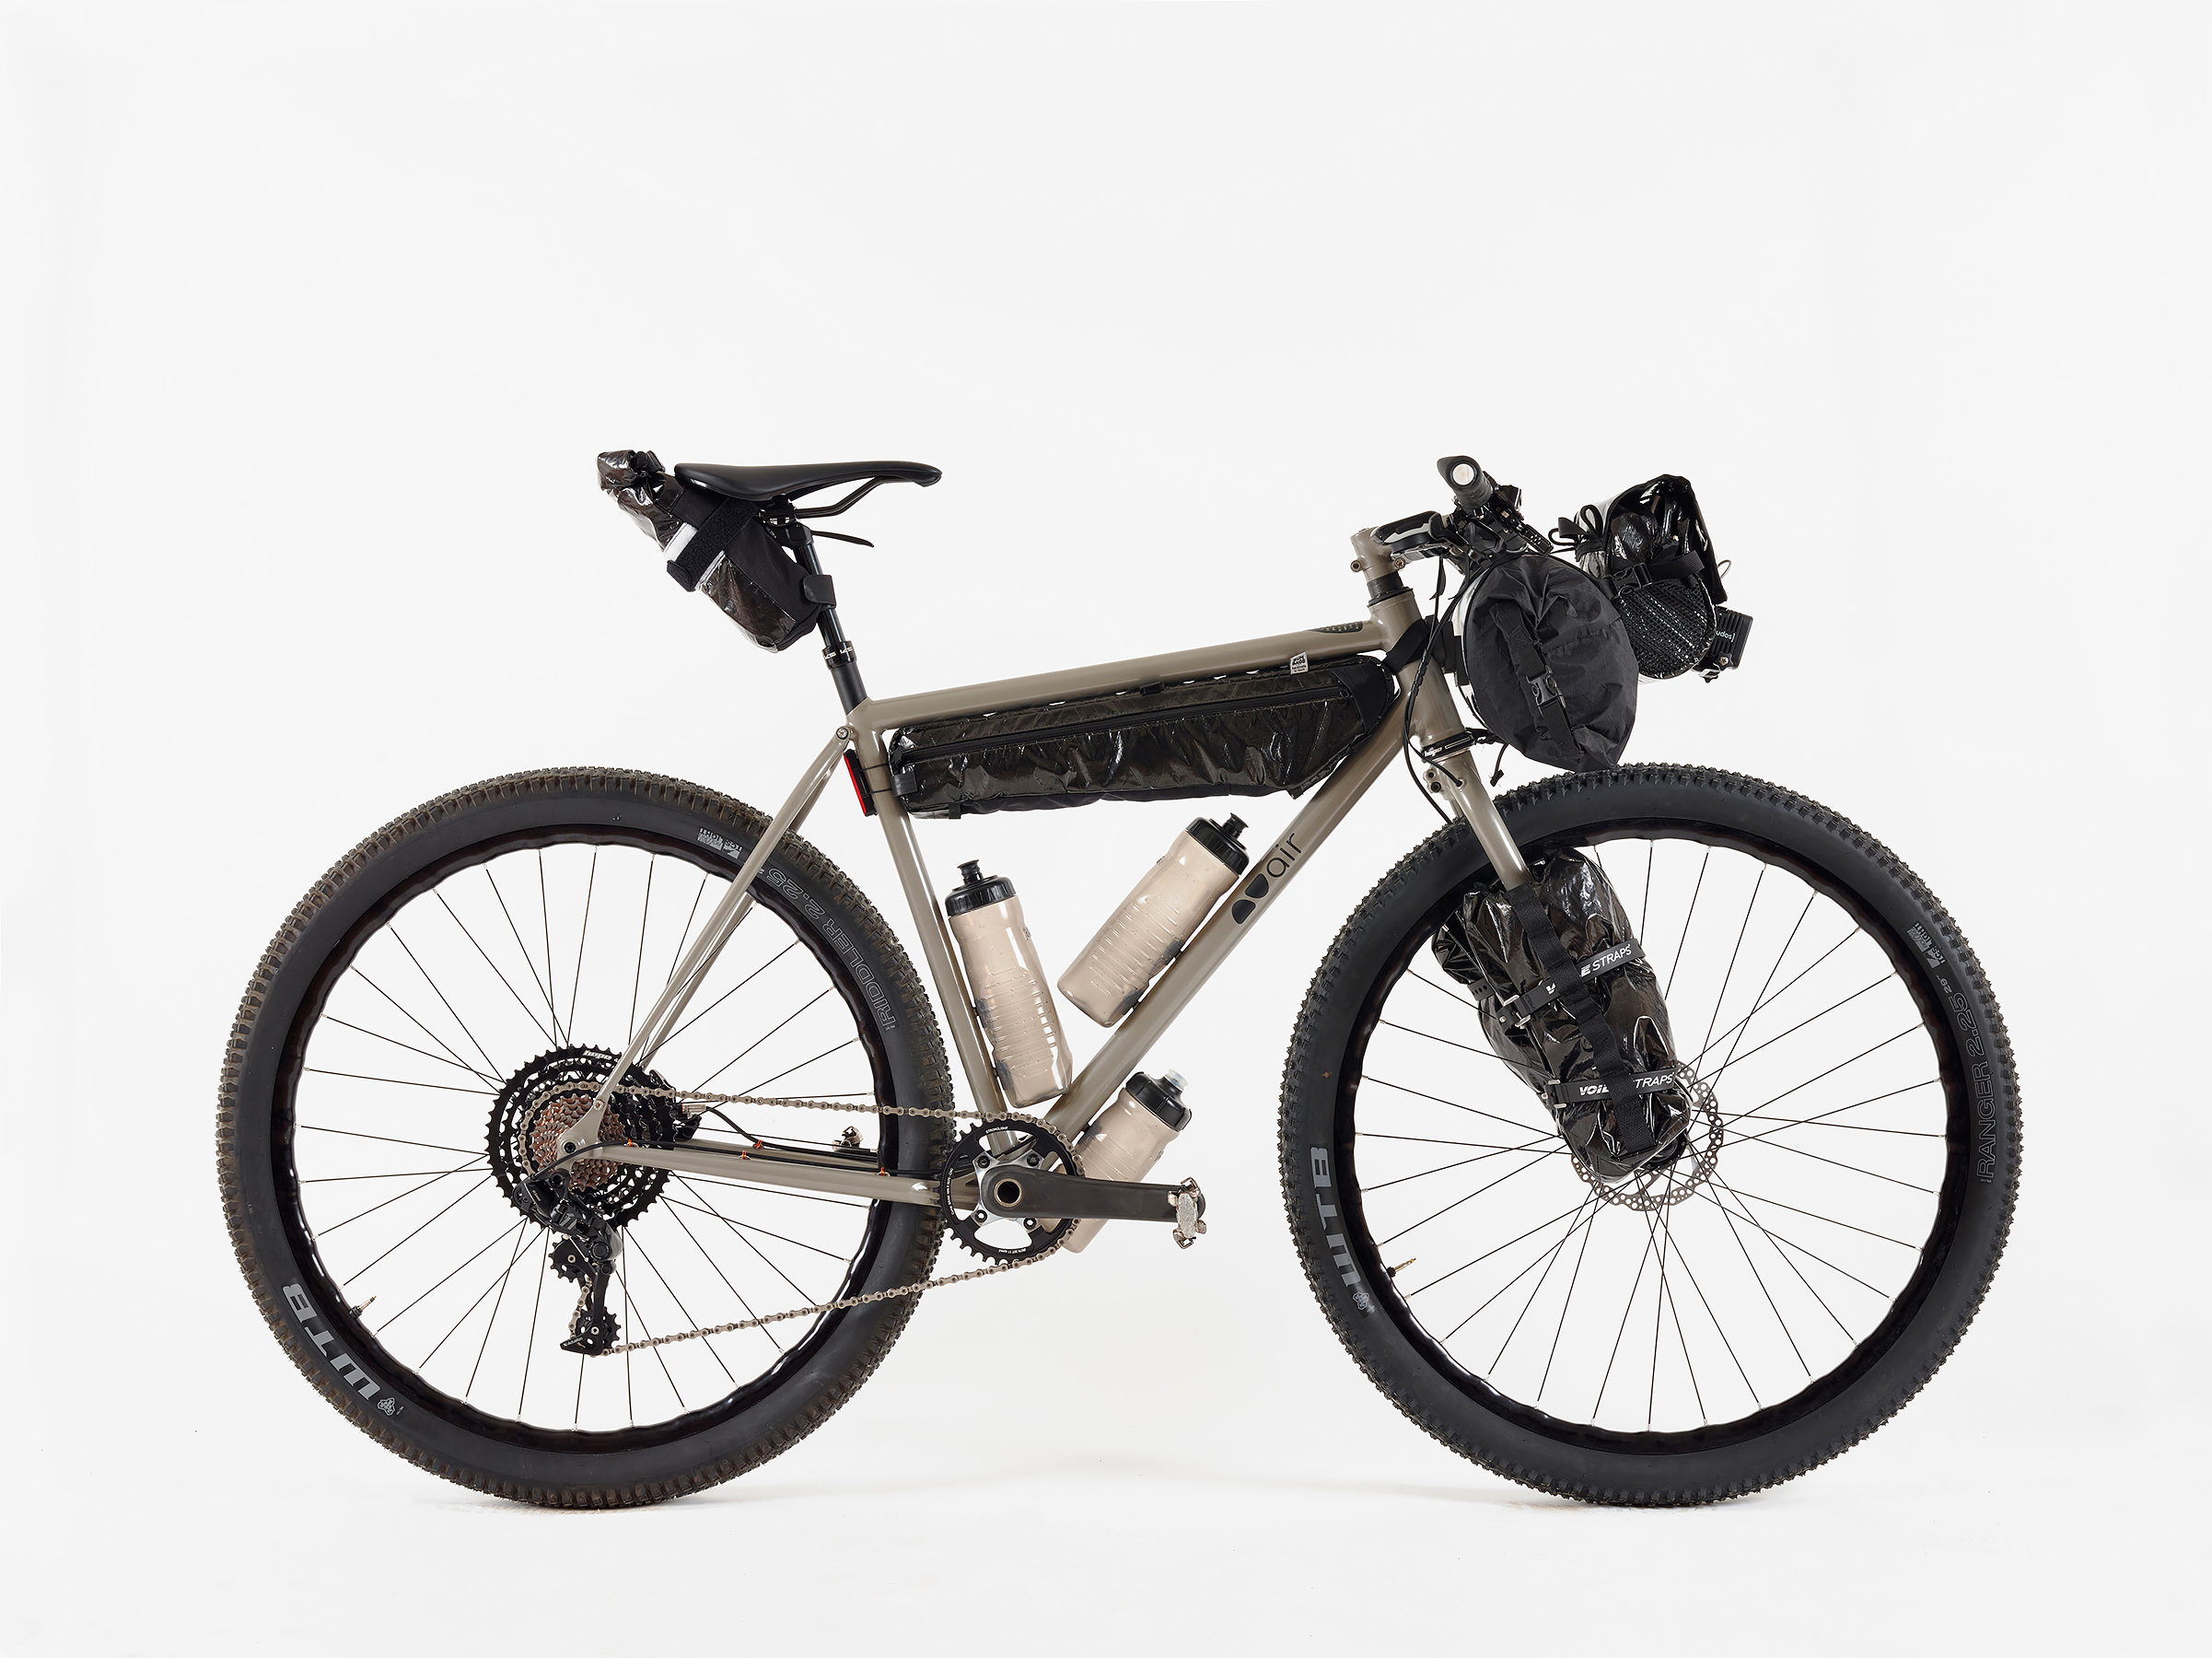 VTT AIRCYCLES CONCOURS DES MACHINES